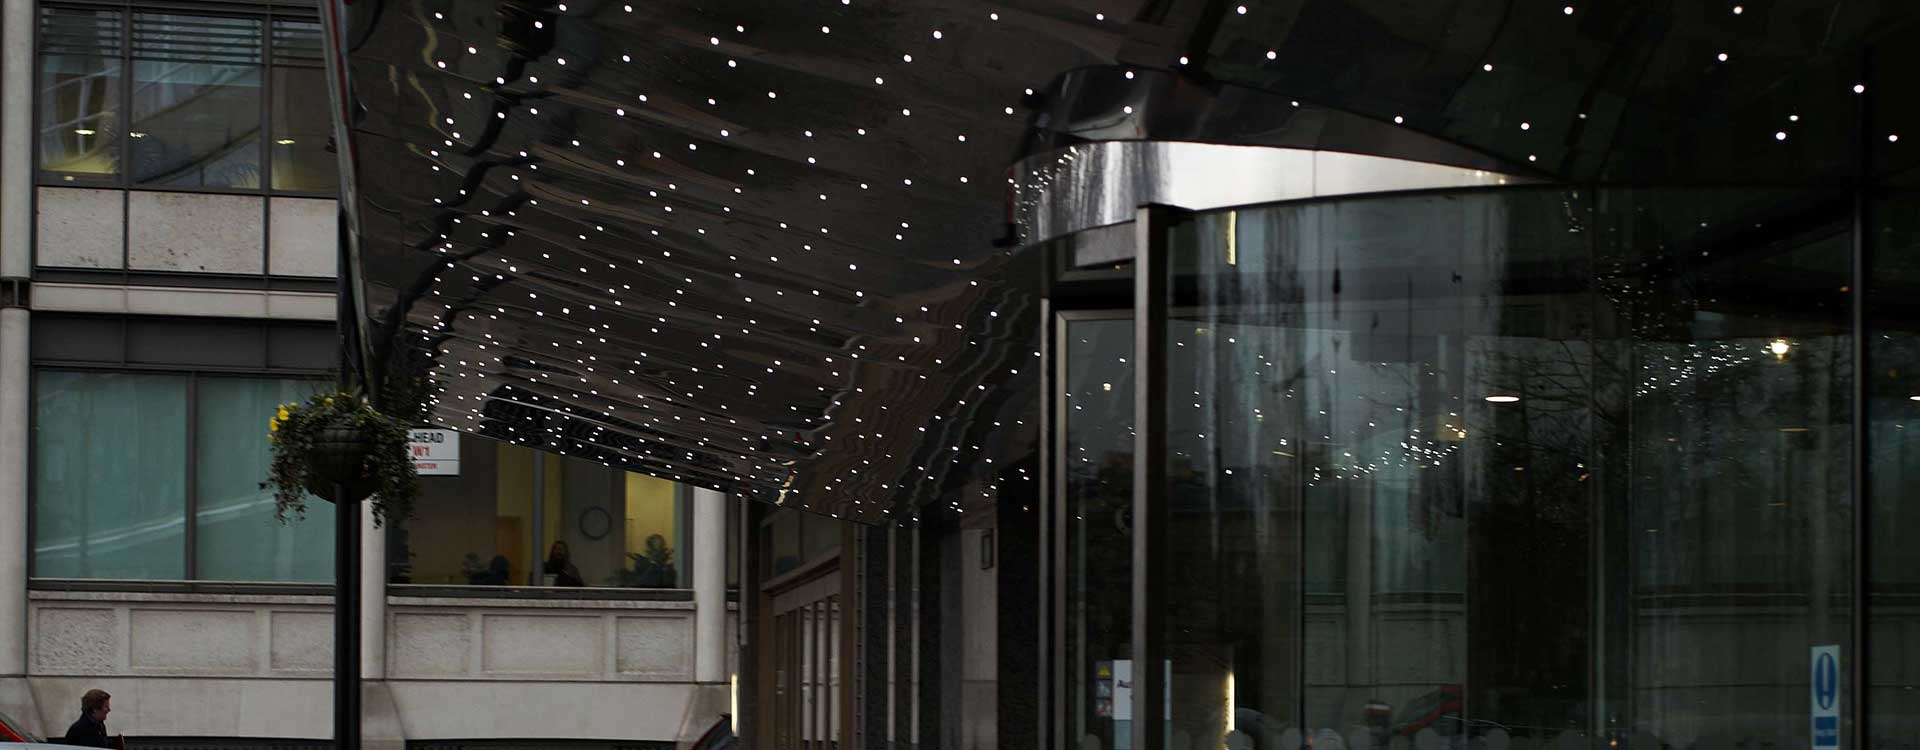 fibre optic lighting at the hilton, park lane